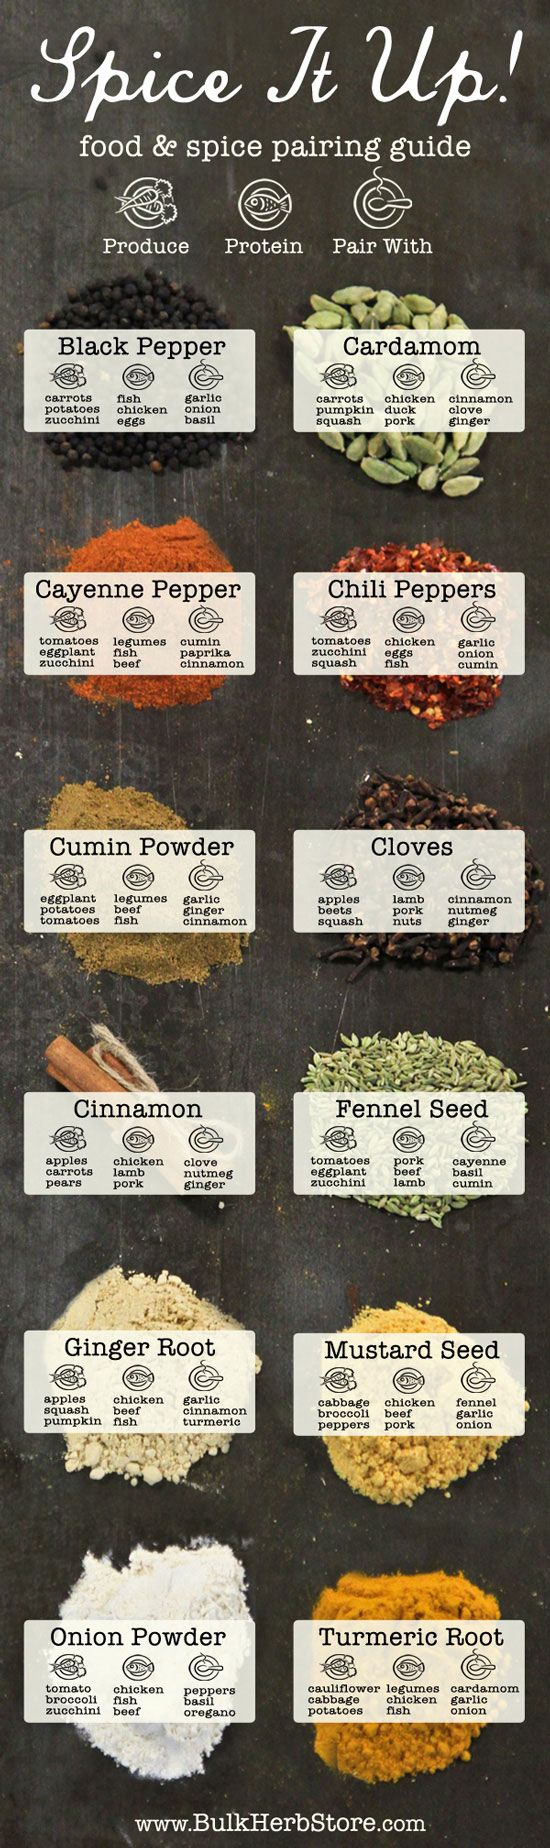 The right use of herbs/spices makes all the difference between cooking for the sake of feeding, and cooking for the sake of delighting others. Deep Roots at Home